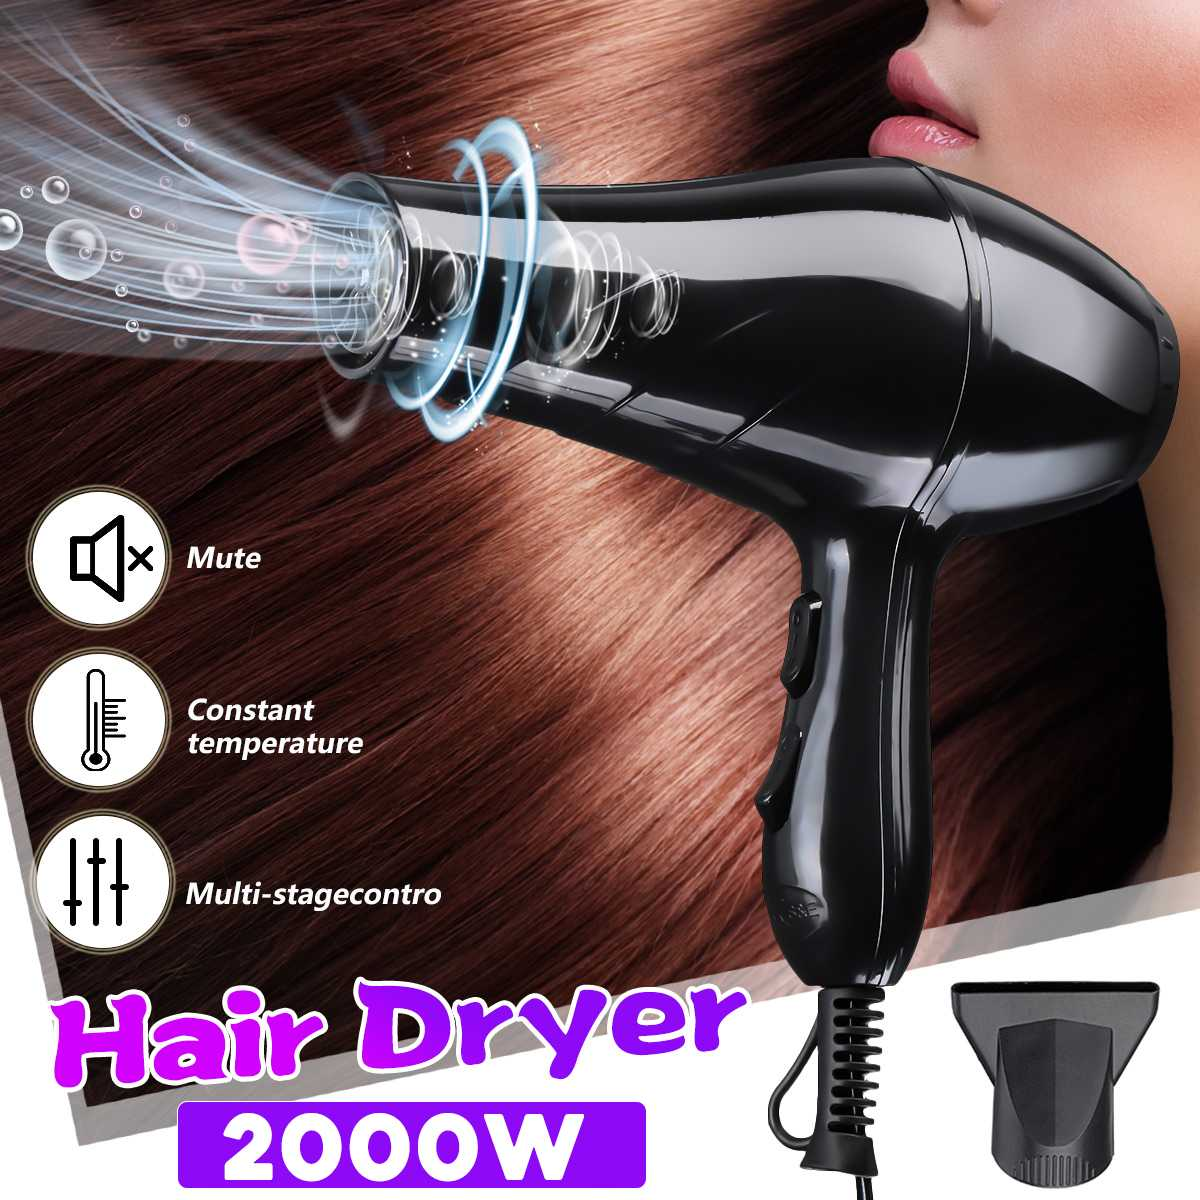 Professional 2000W Great Power Hair Dryer Hot & Cold Blow Fast Heating Large Power Salon For Anion Hairdressing Barber Salon